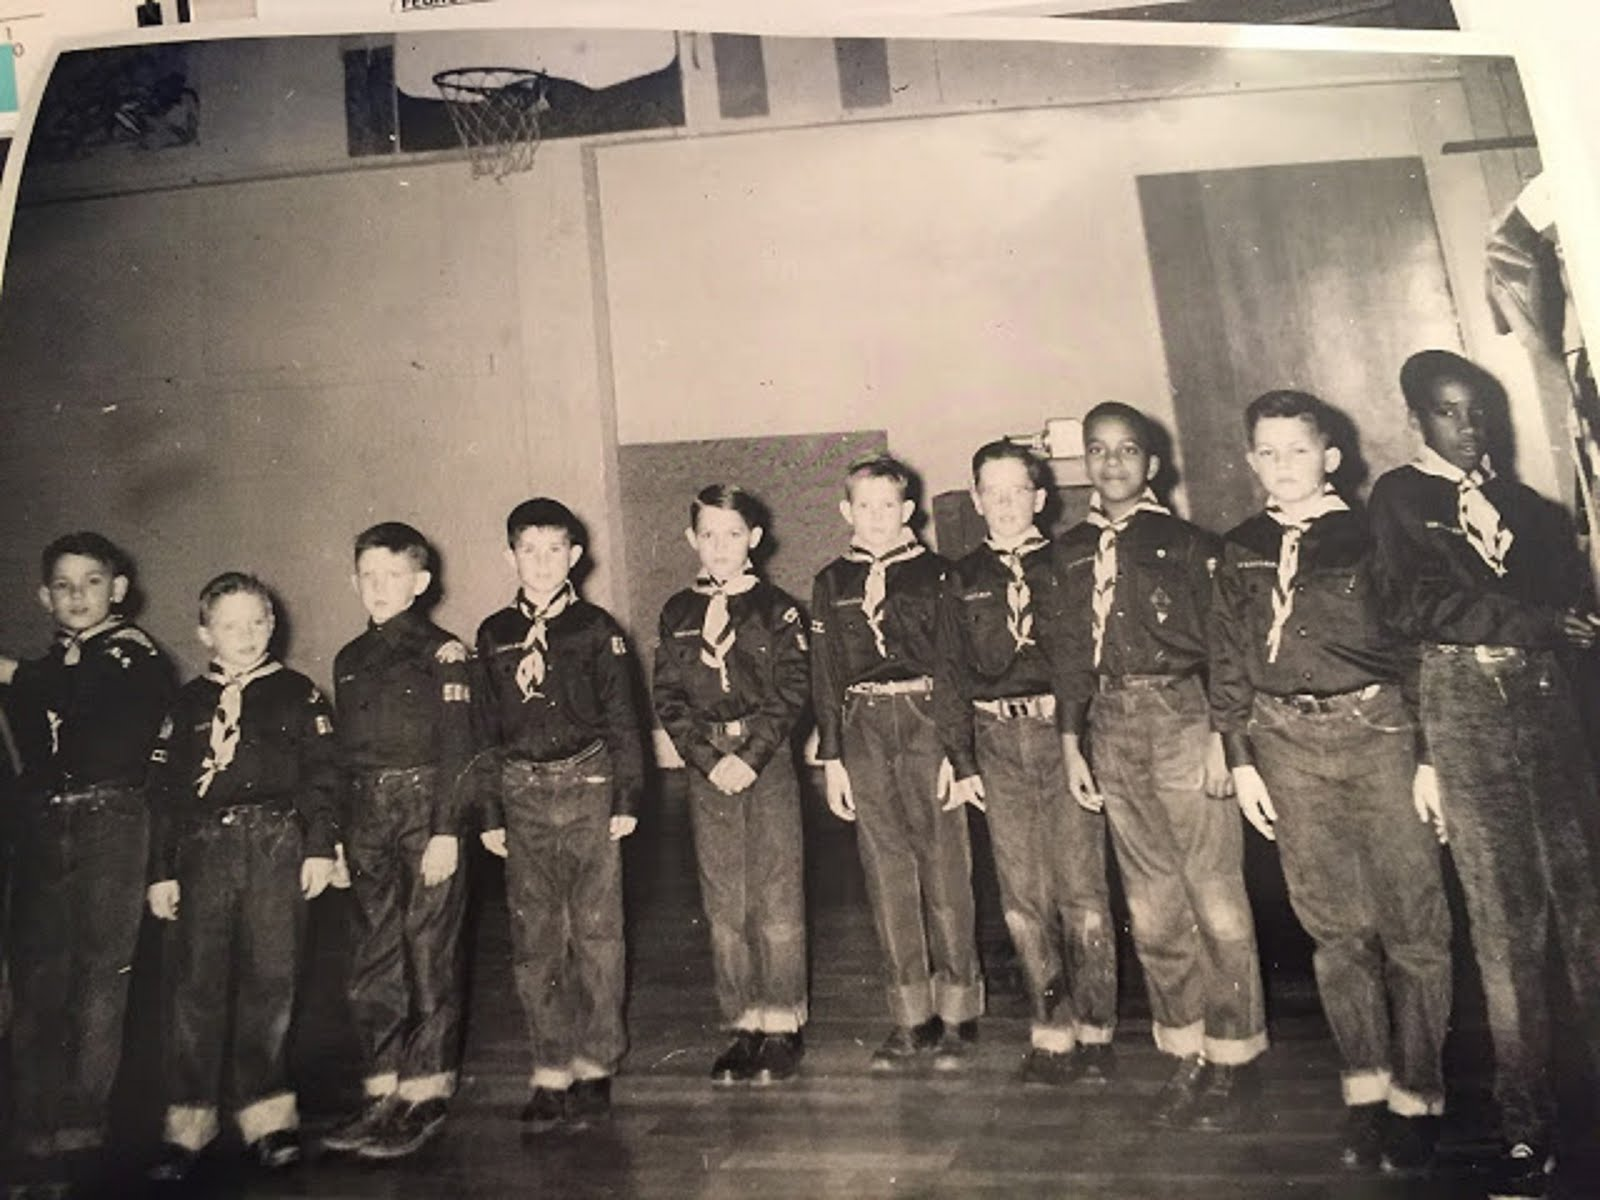 MACARTHUR ELEMENTARY SCHOOL- VANCOUVER, WA  - CUB SCOUT PACK 374 - I'AM SECOND FROM THE LEFT - 1956